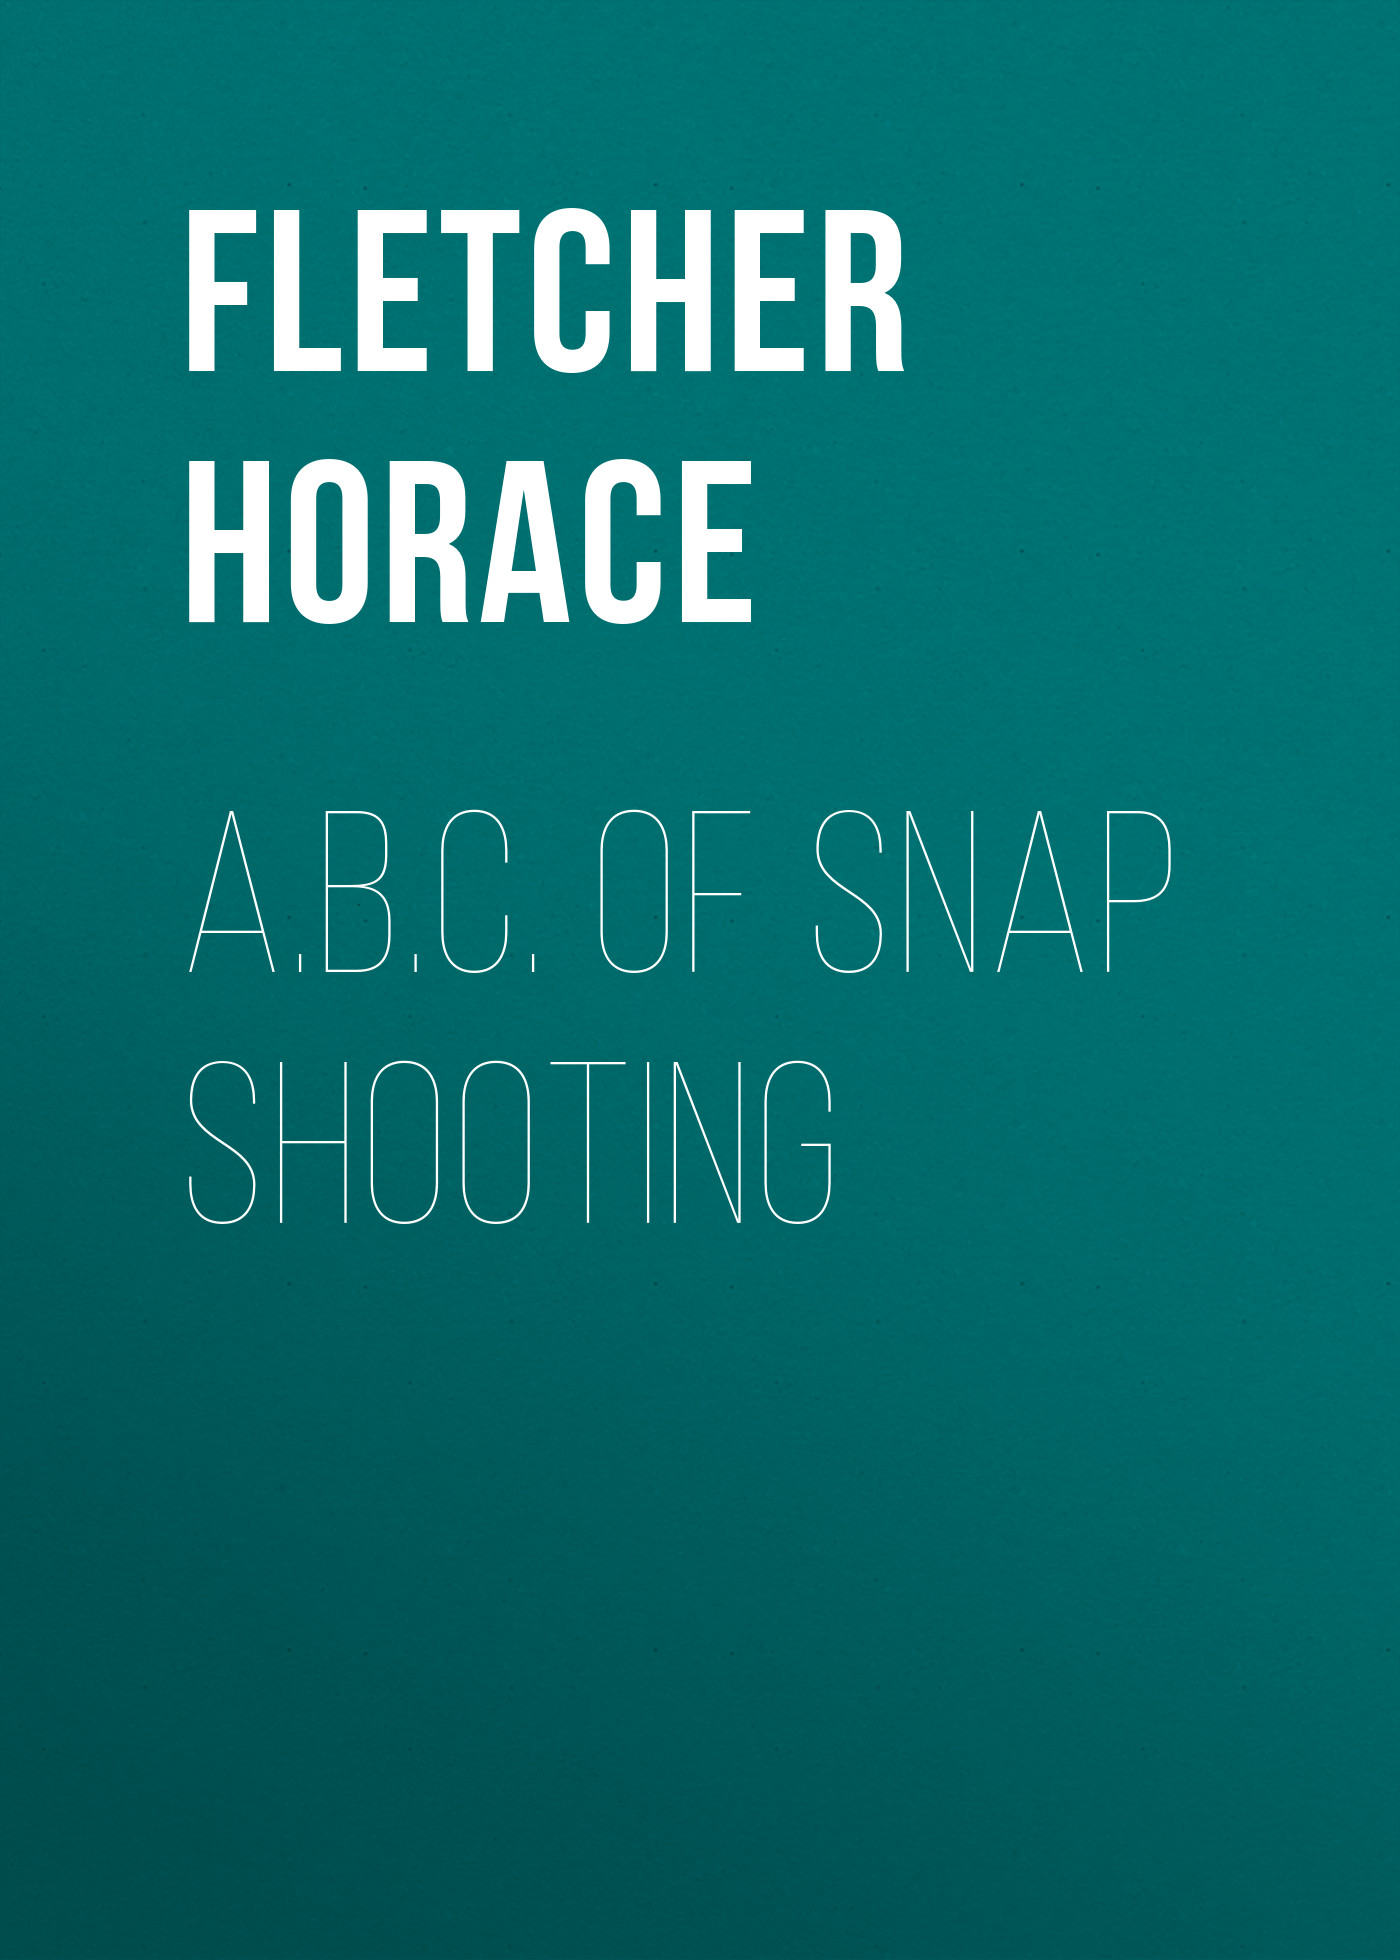 Fletcher Horace A.B.C. of Snap Shooting